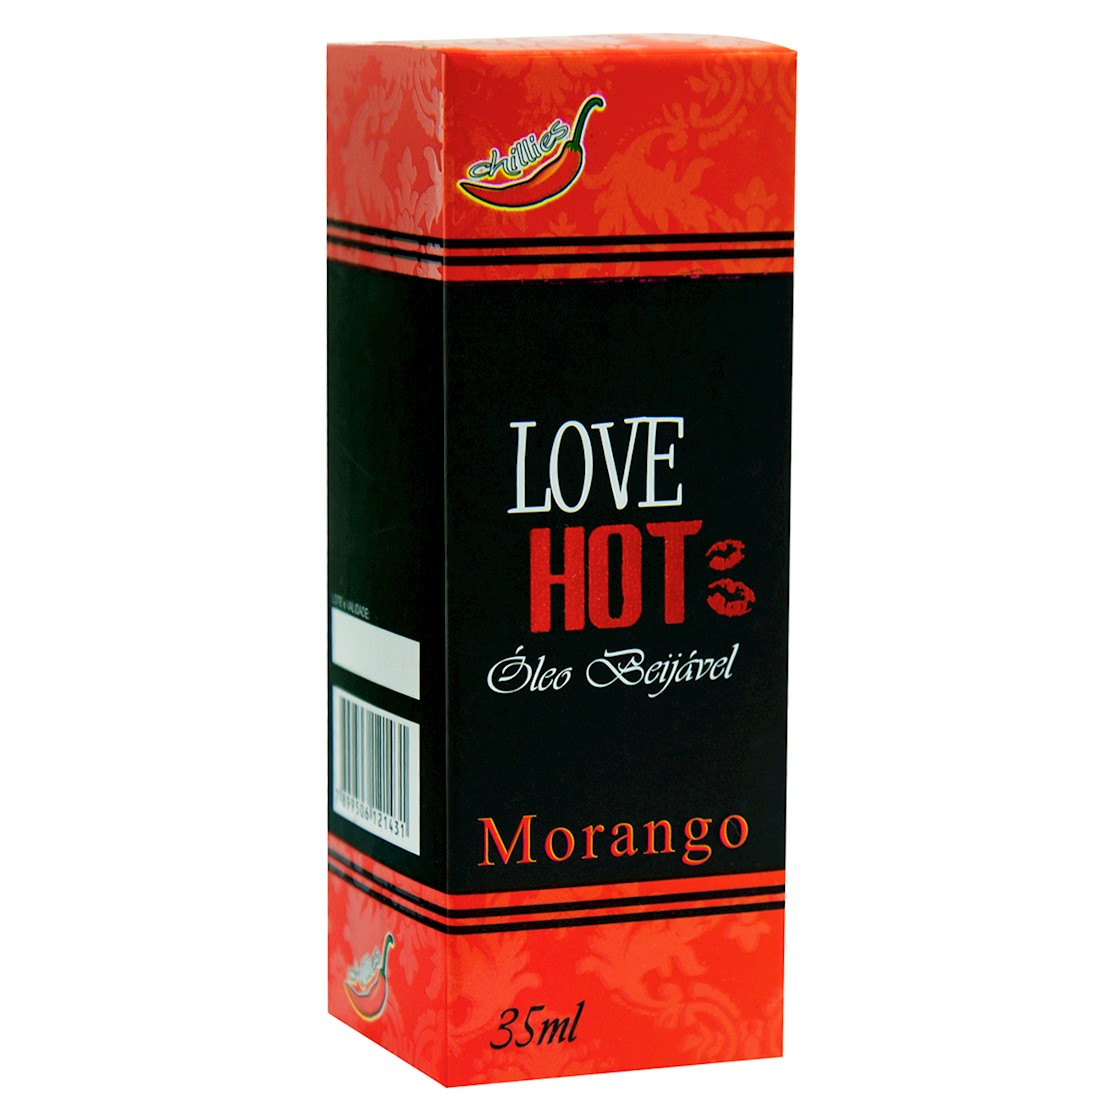 Love Hot Morango Chillies 35ml - C125